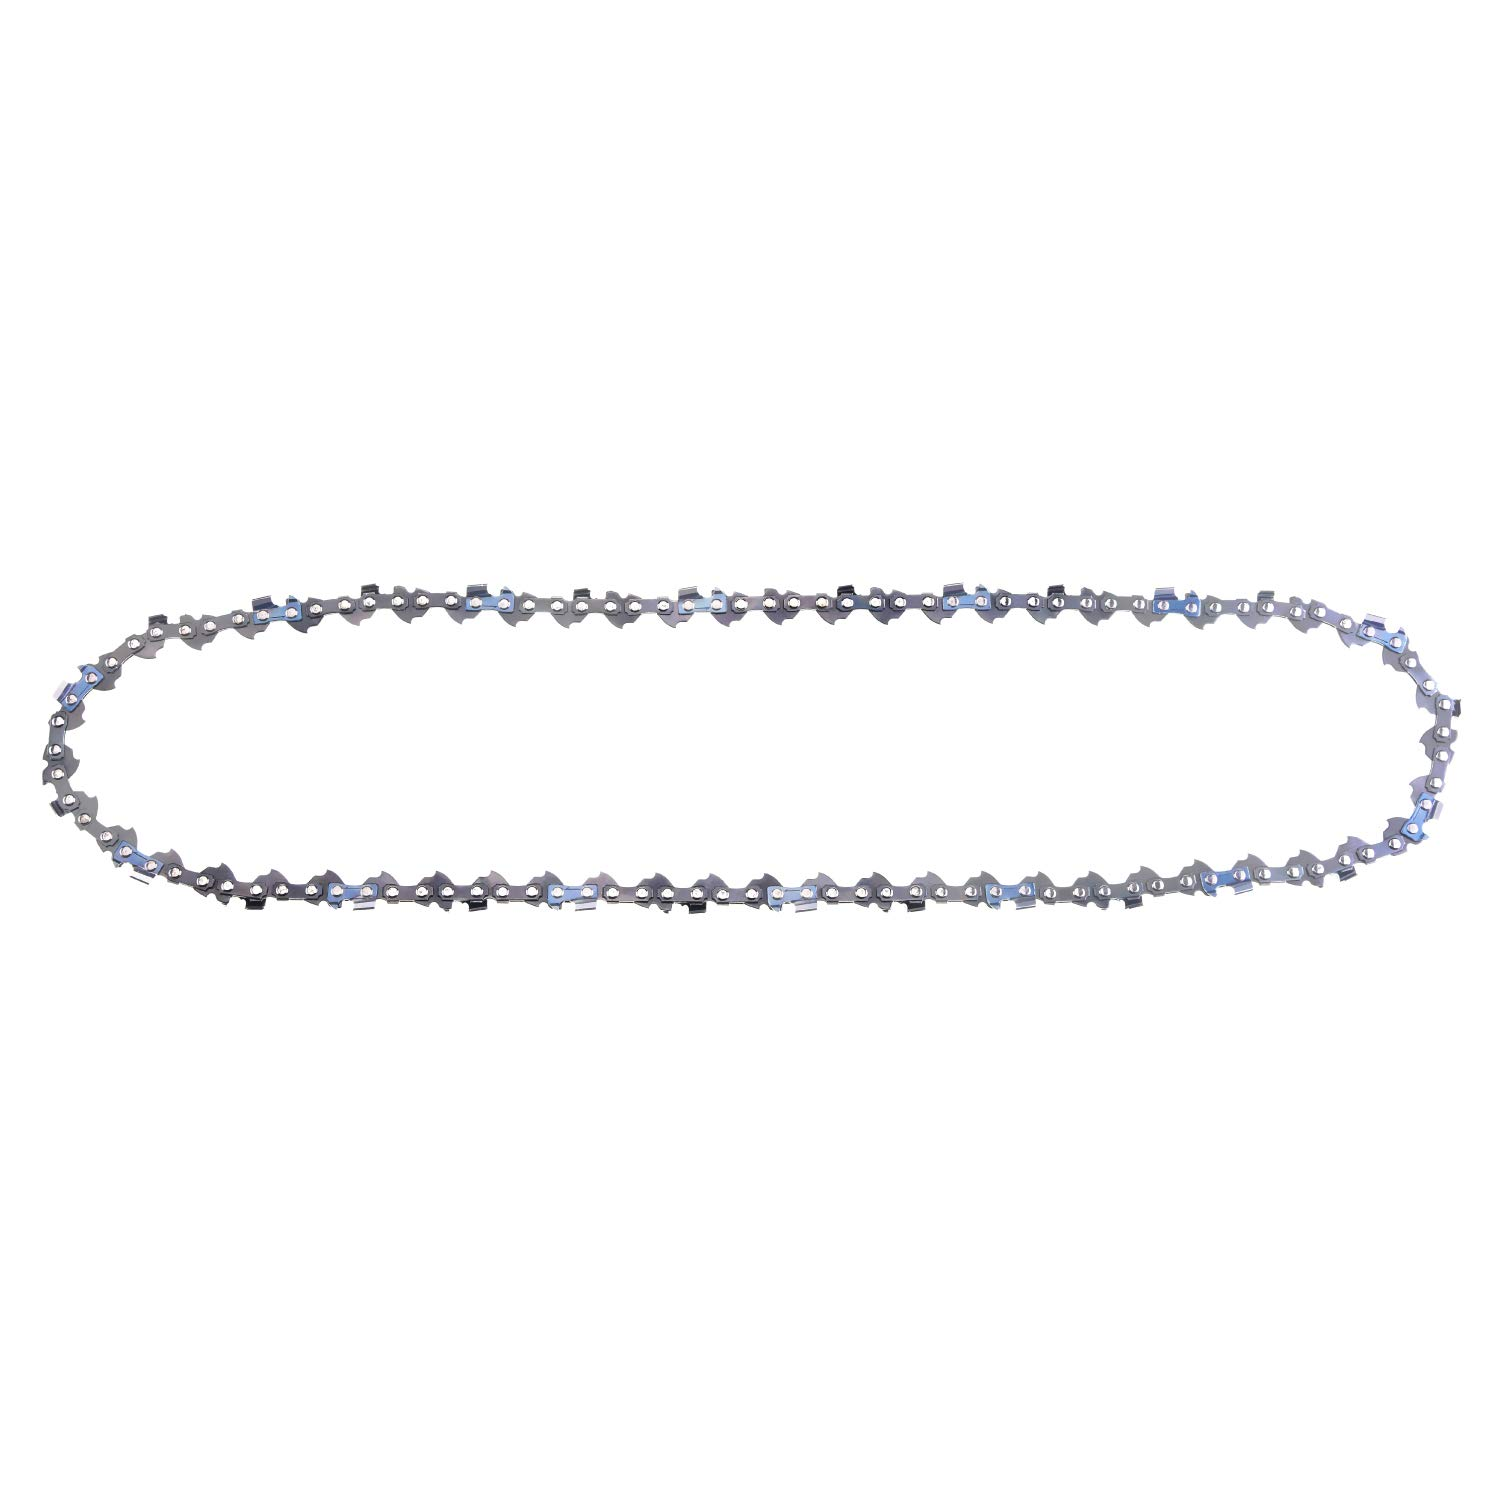 SUNGATOR 16-Inch Chainsaw Chain SG-S56 .050 Gauge 56 Drive Links Fits Echo 3//8 LP Pitch Poulan Greenworks and More Remington Homelite